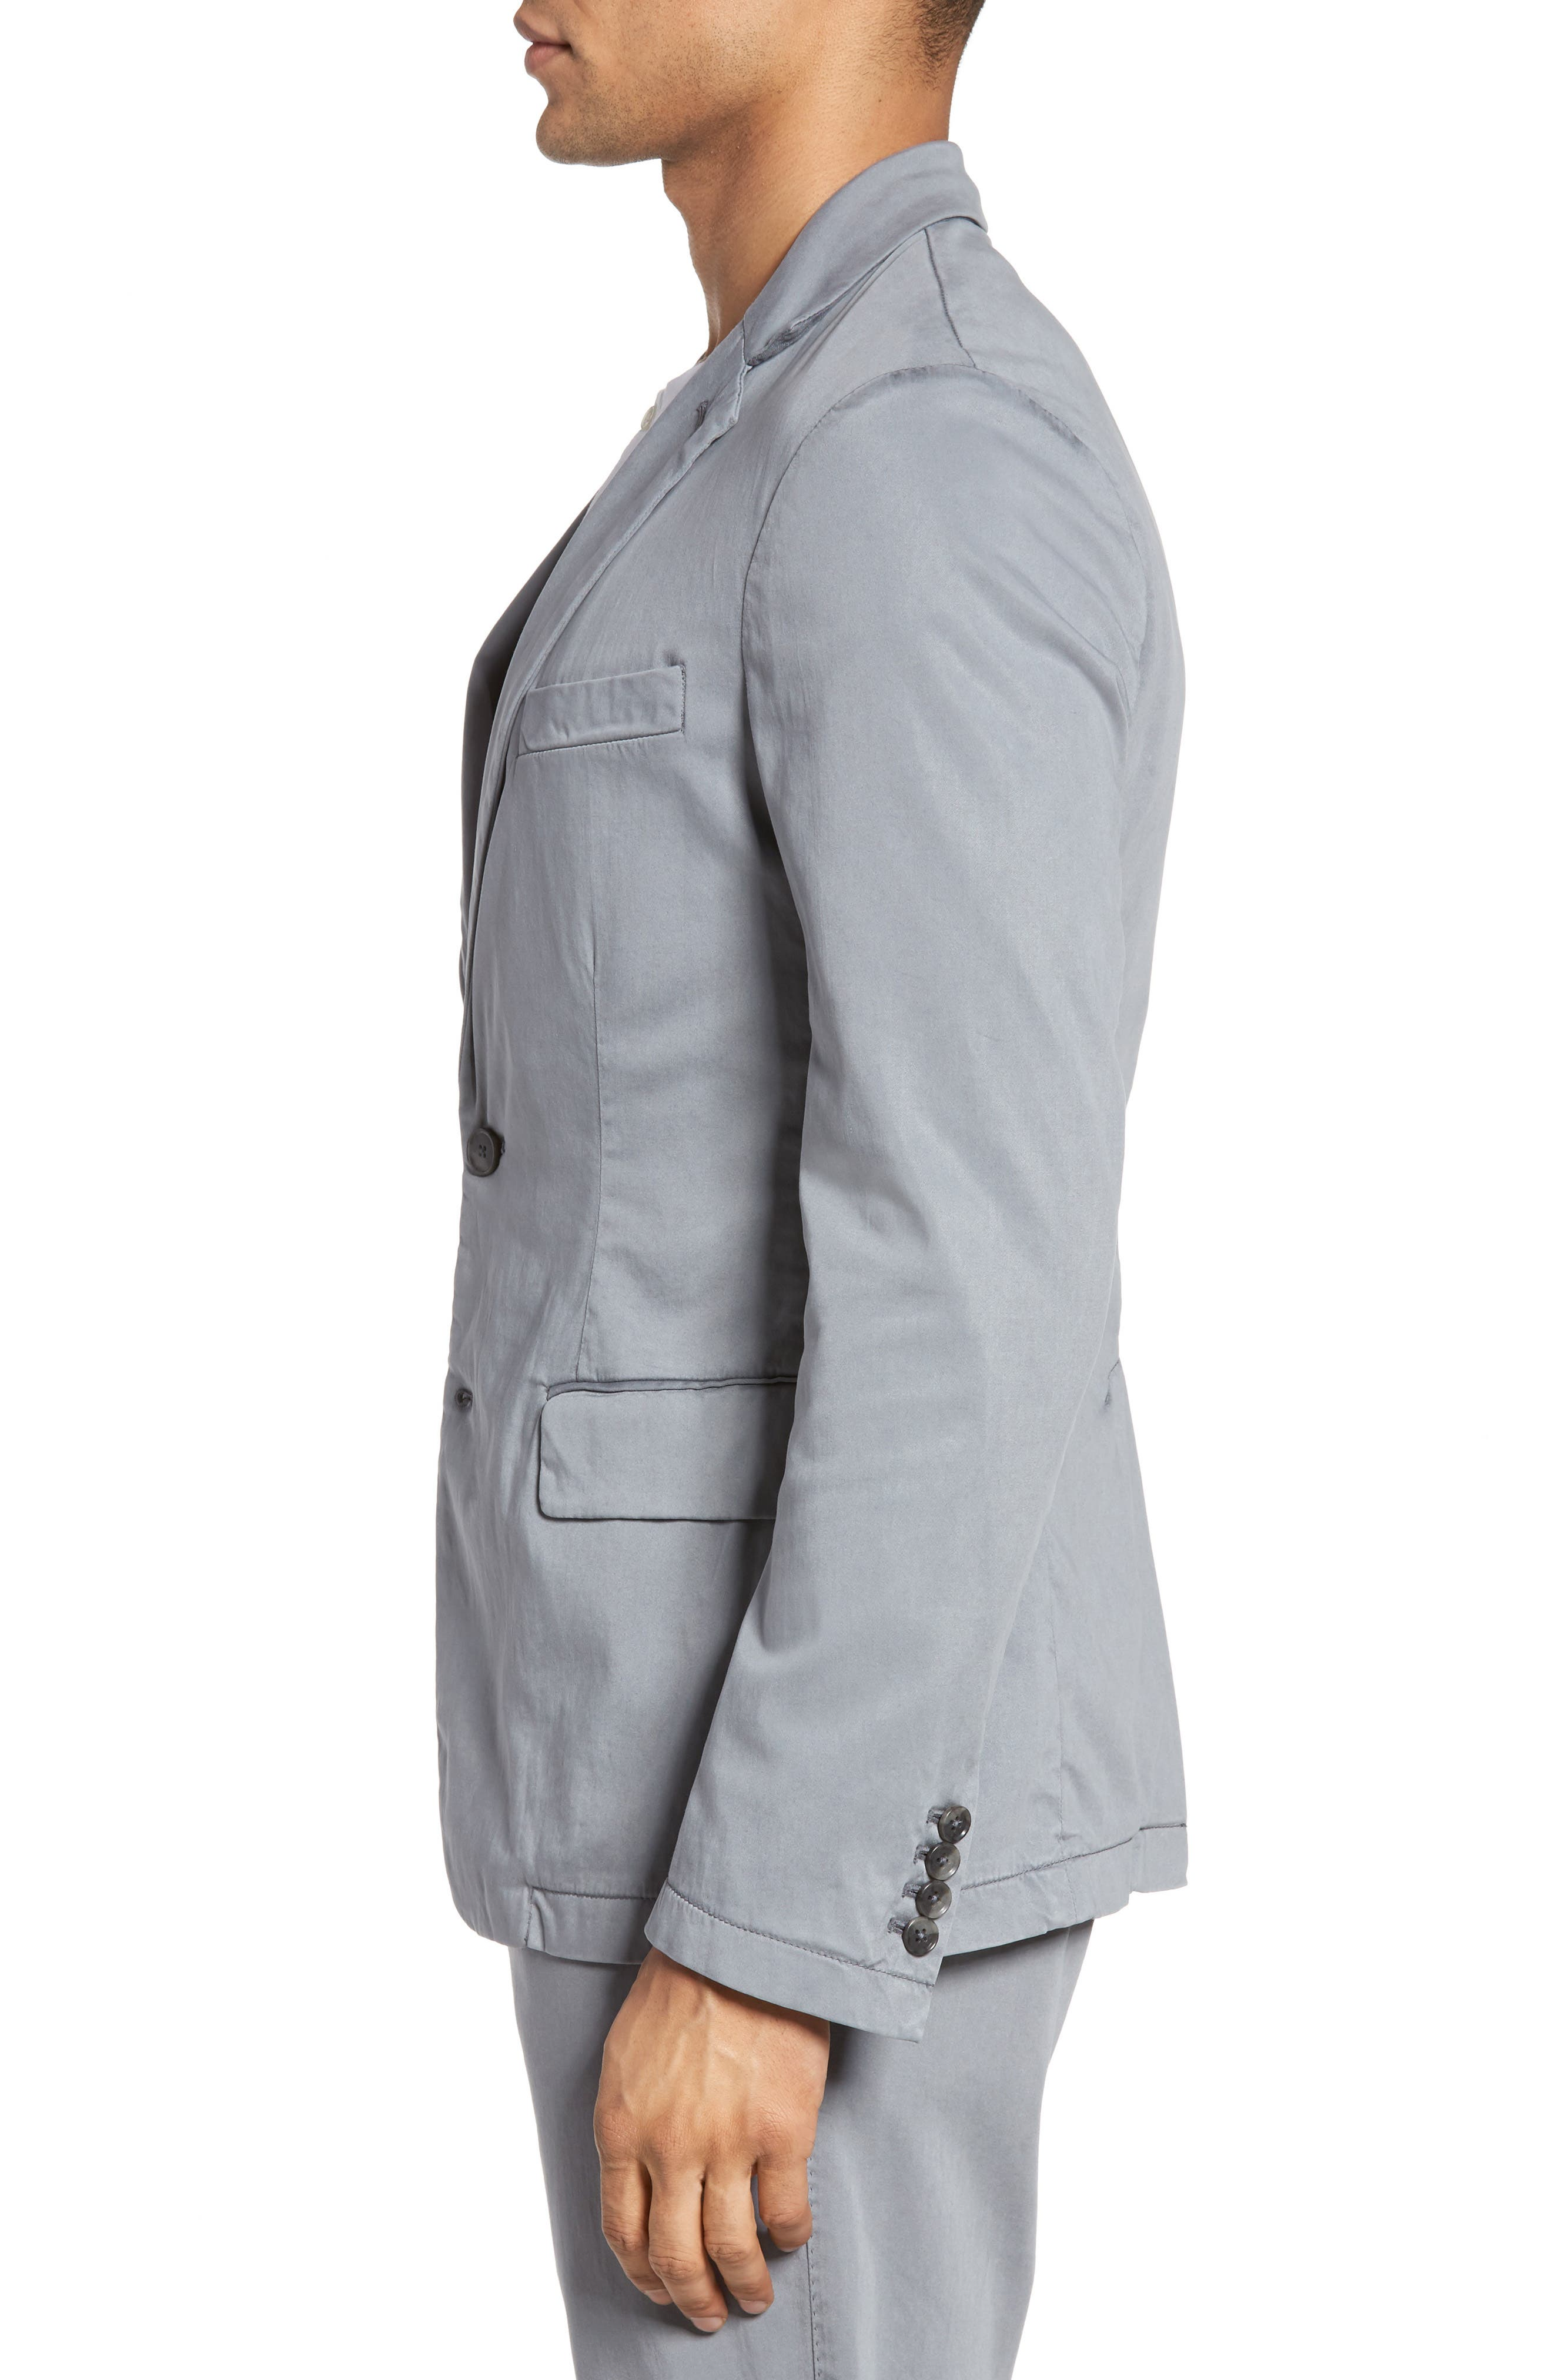 Anther Sport Coat,                             Alternate thumbnail 3, color,                             020